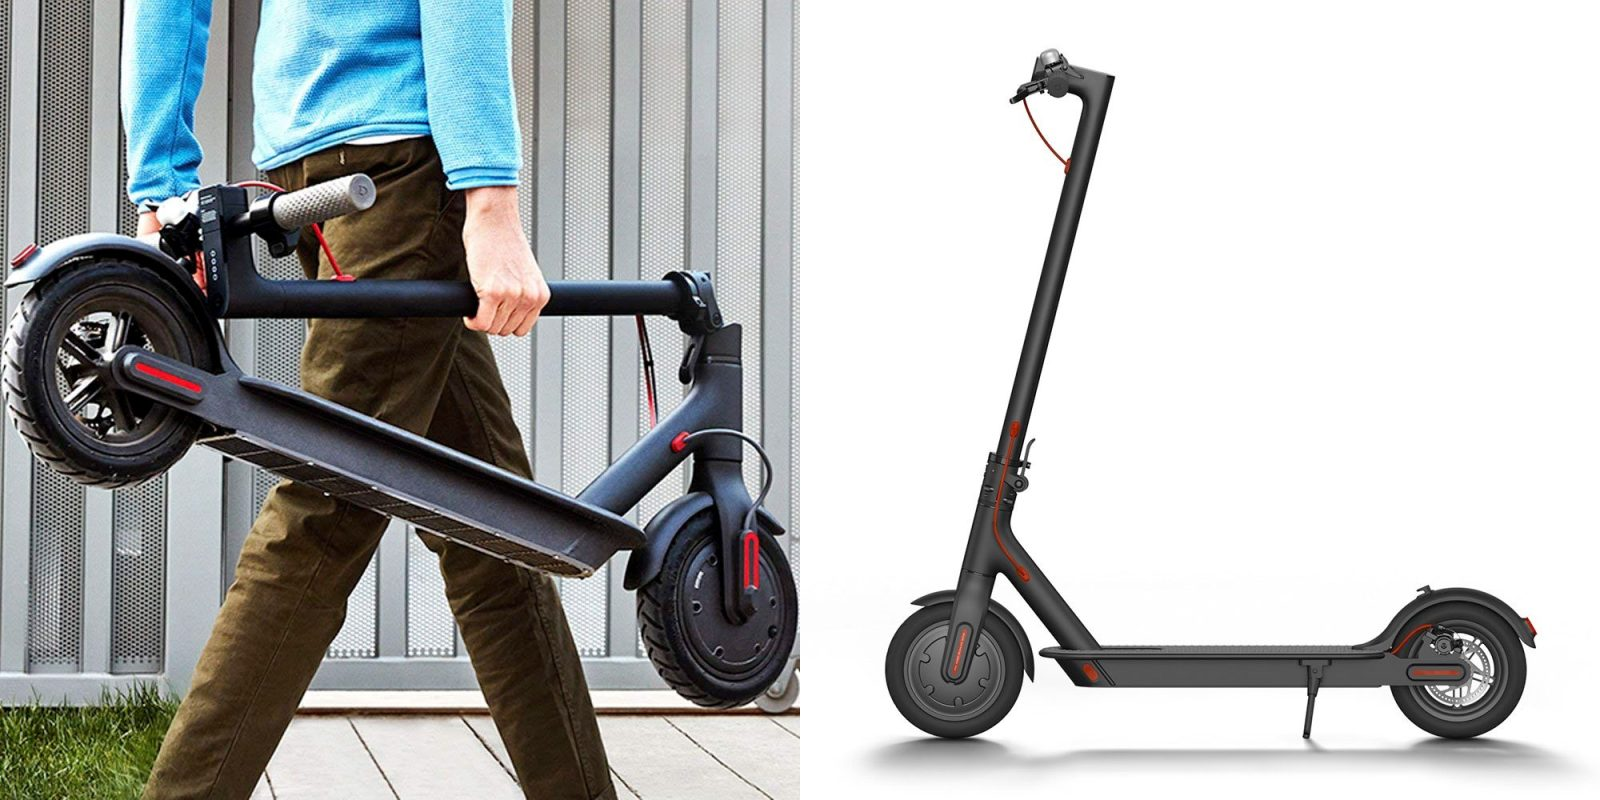 Xiaomi Mi electric scooter hits new Amazon all-time low at